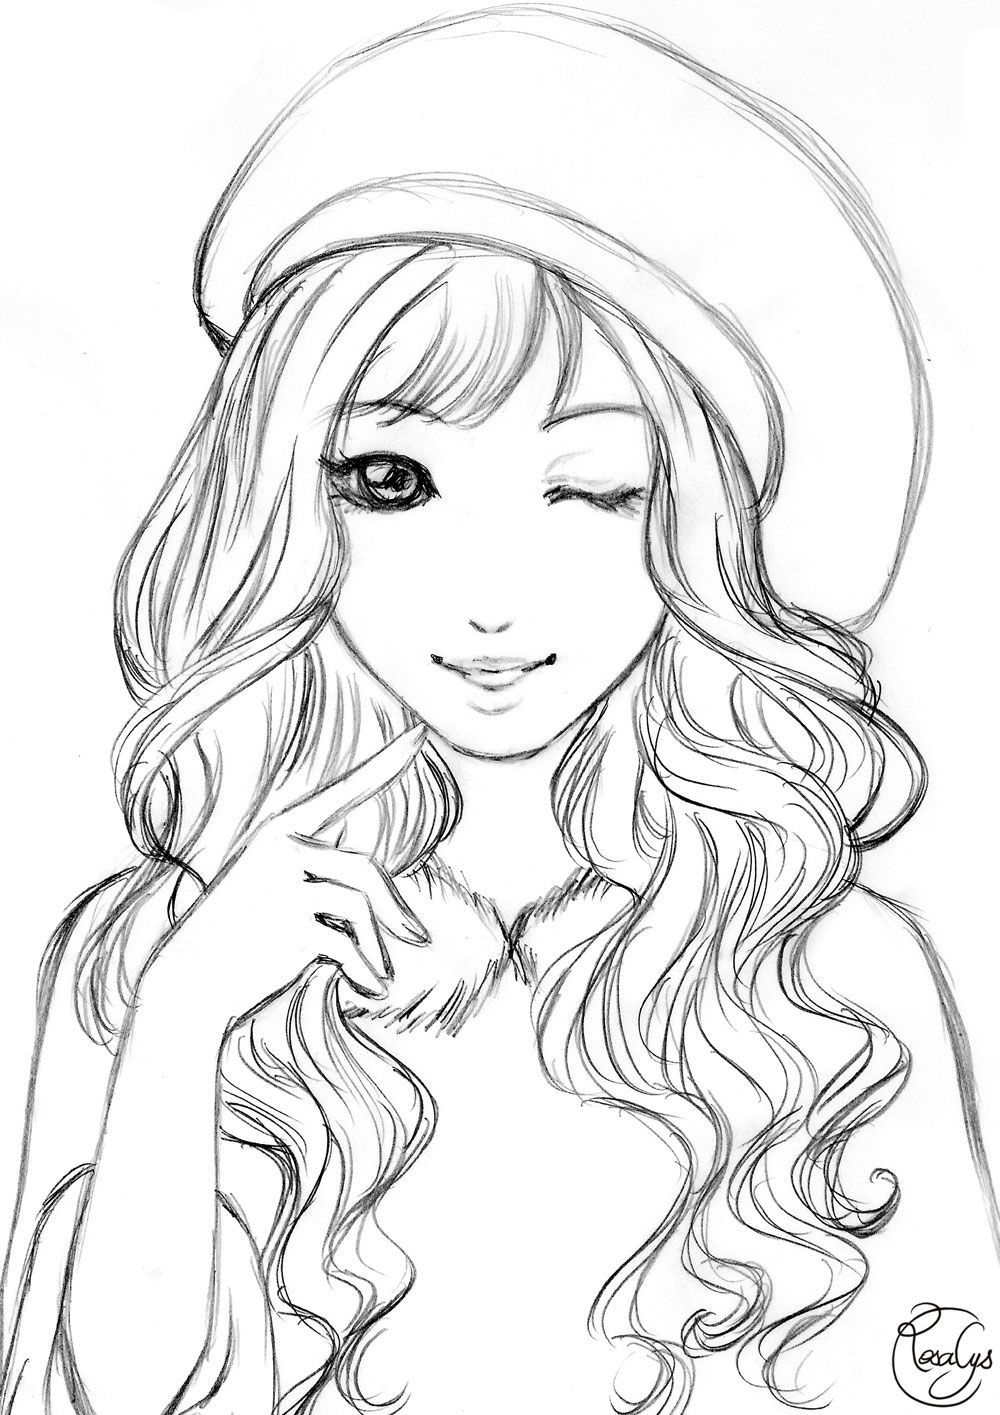 kawaii girl coloring pages 25 marvelous photo of cute girl coloring pages birijuscom kawaii coloring girl pages